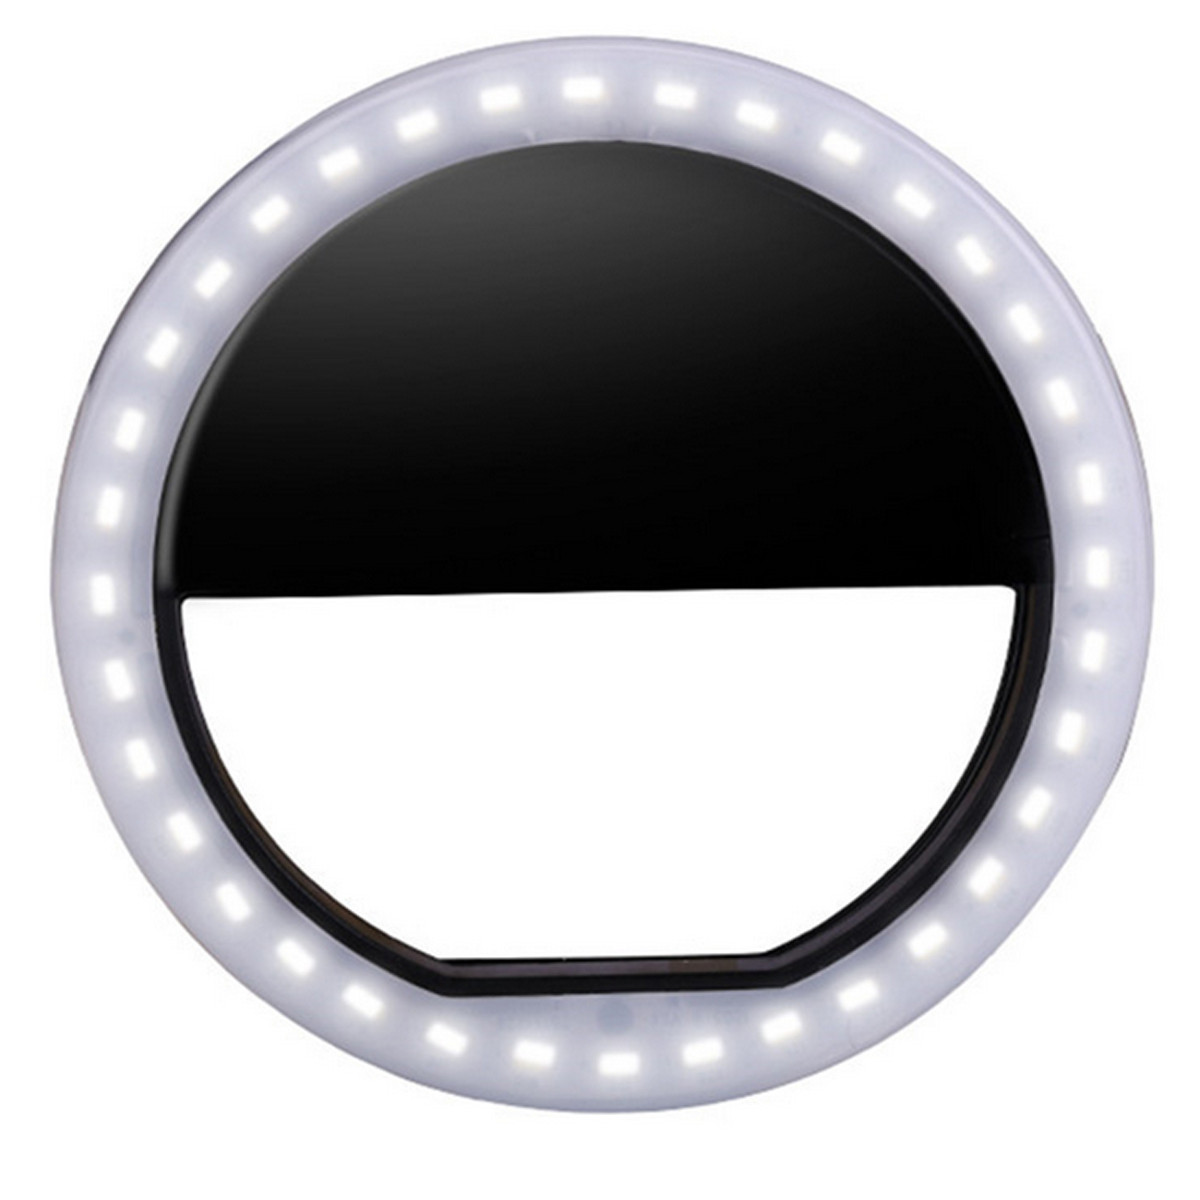 Ring Light For Iphone Ireland